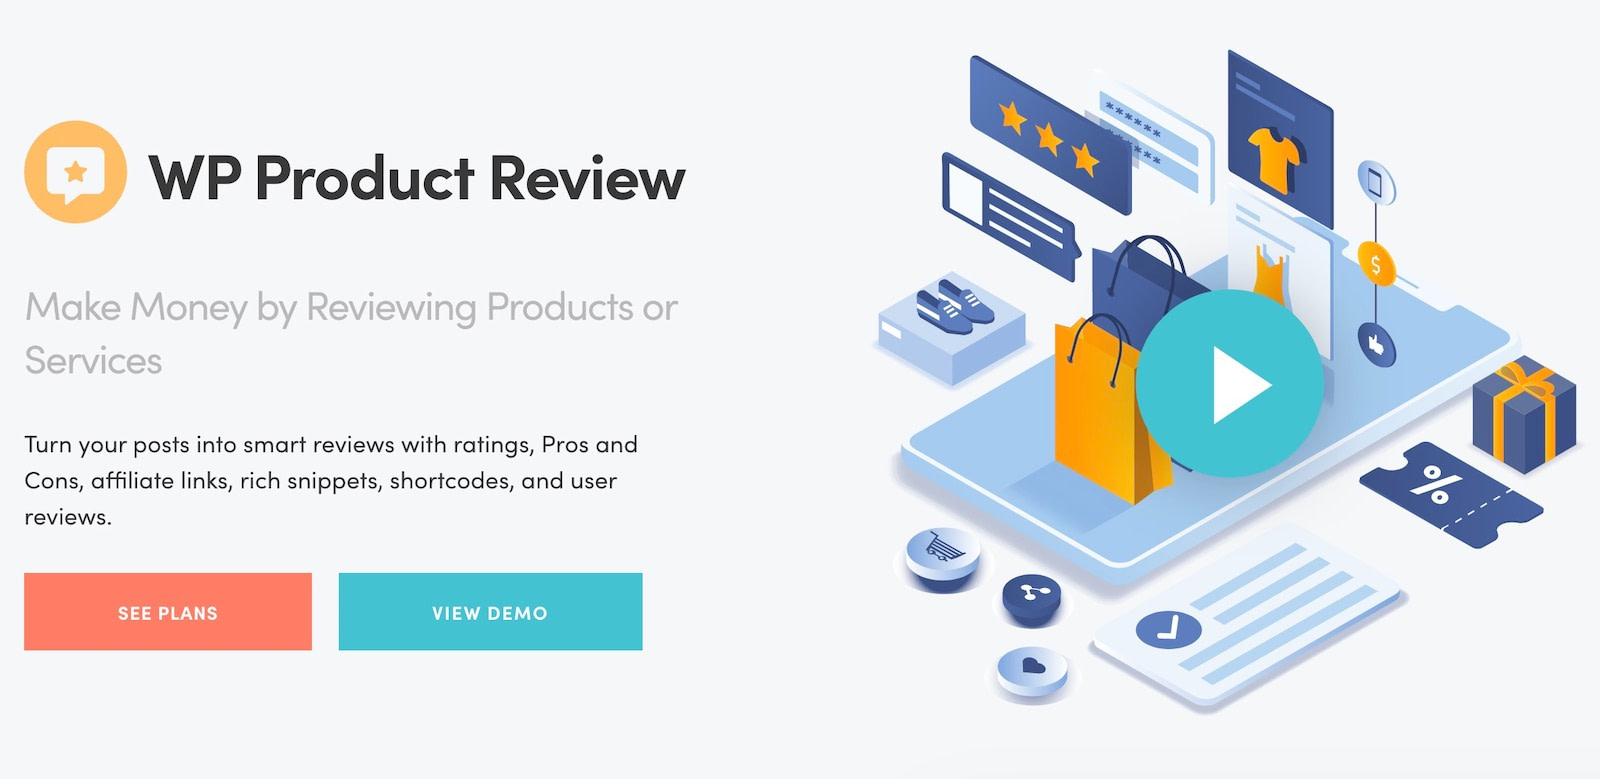 Best WordPress review plugins #1: WP Product Review